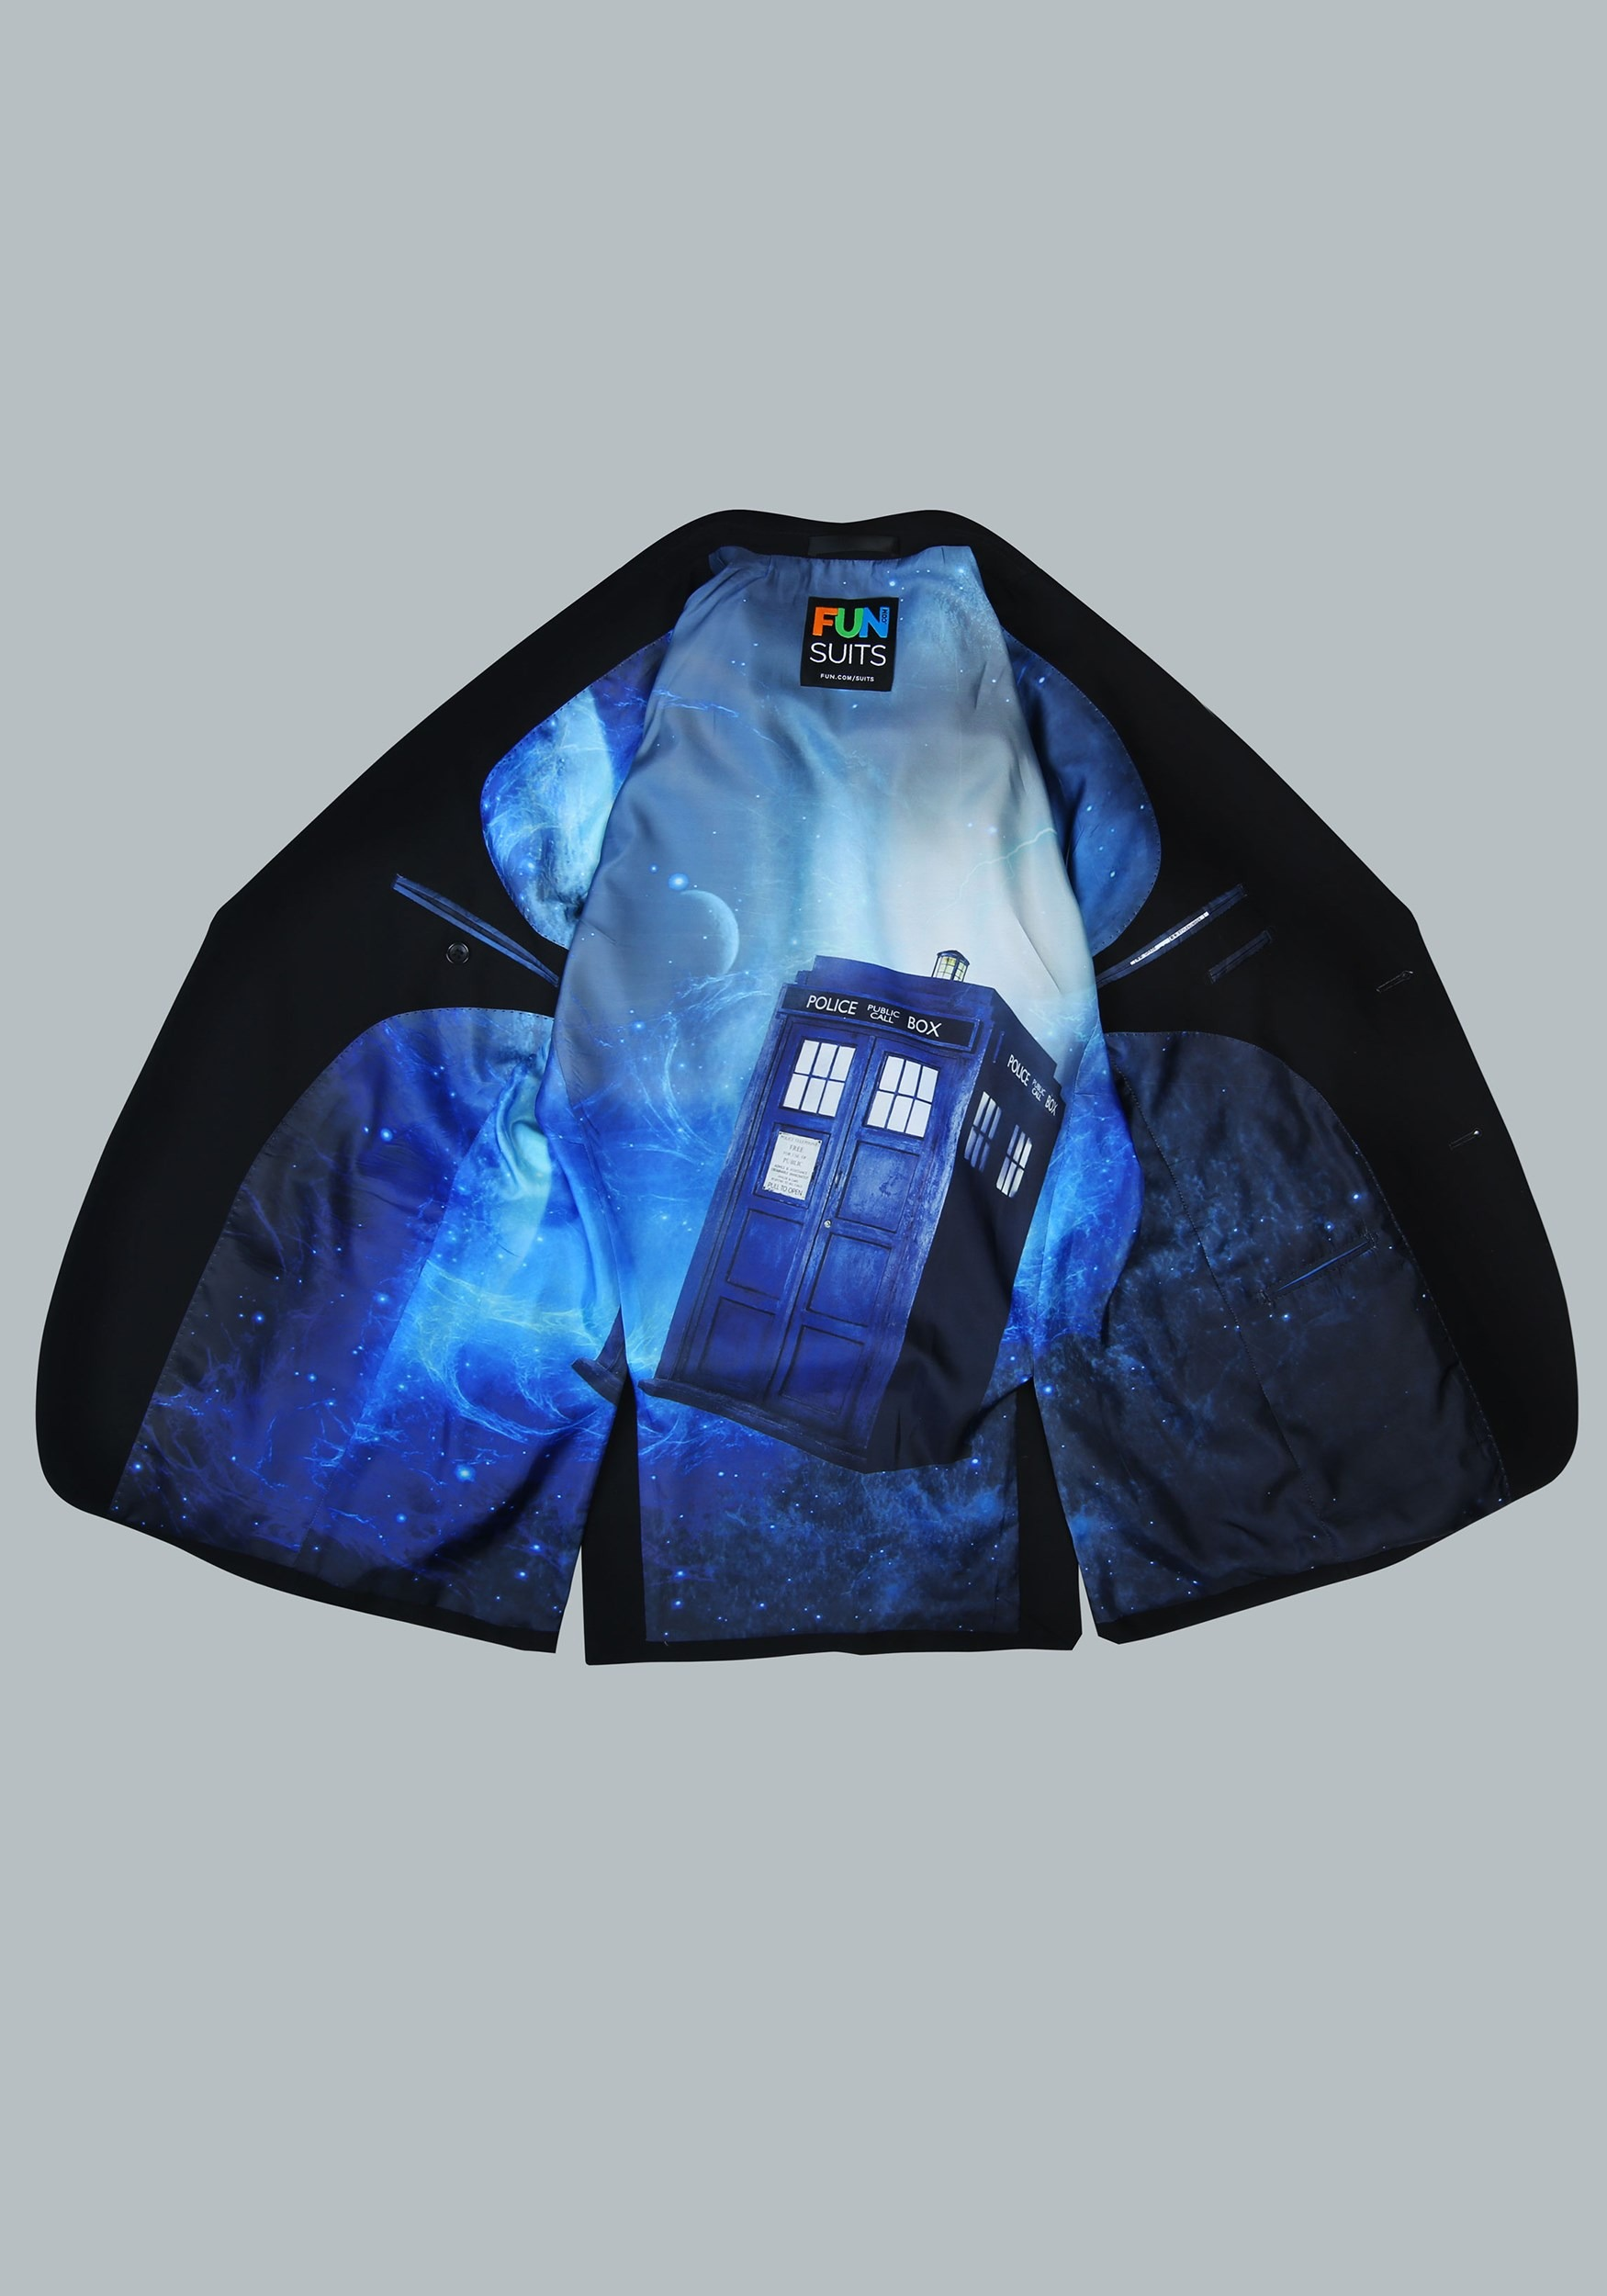 Dr. Who Tardis Pop Interior Suit Jacket